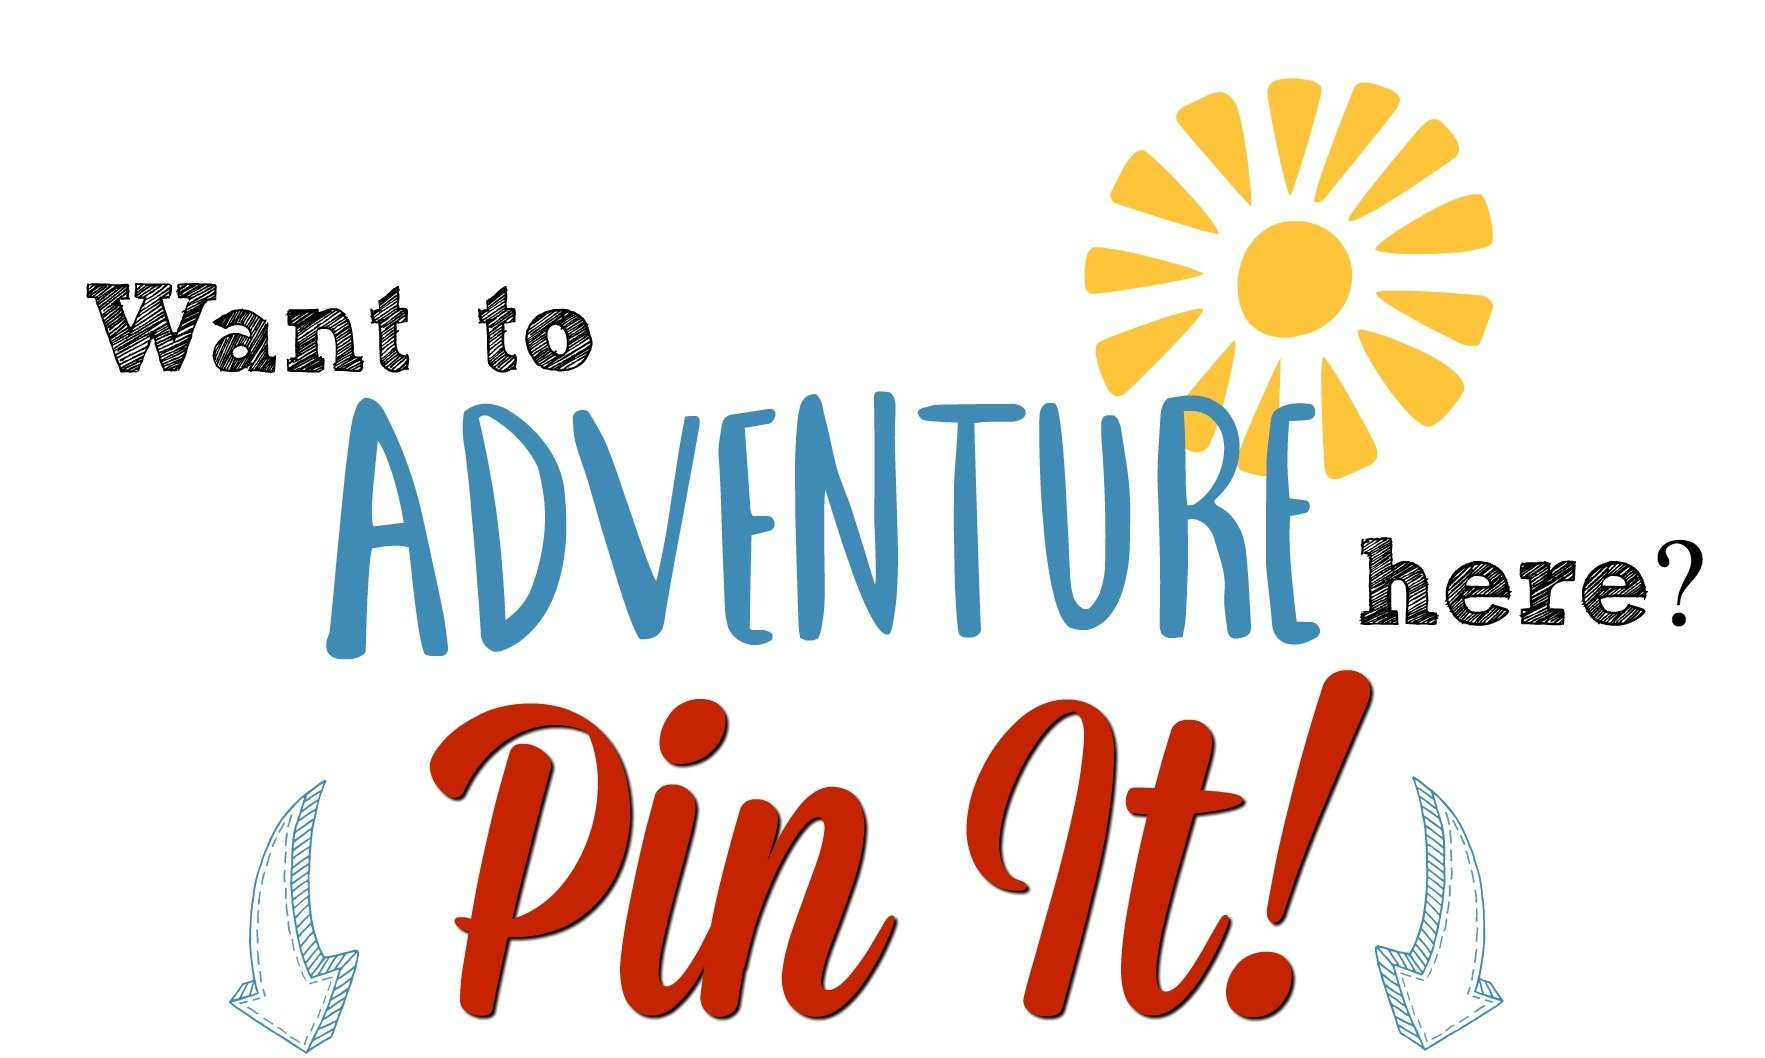 What to adventure here Pin it!